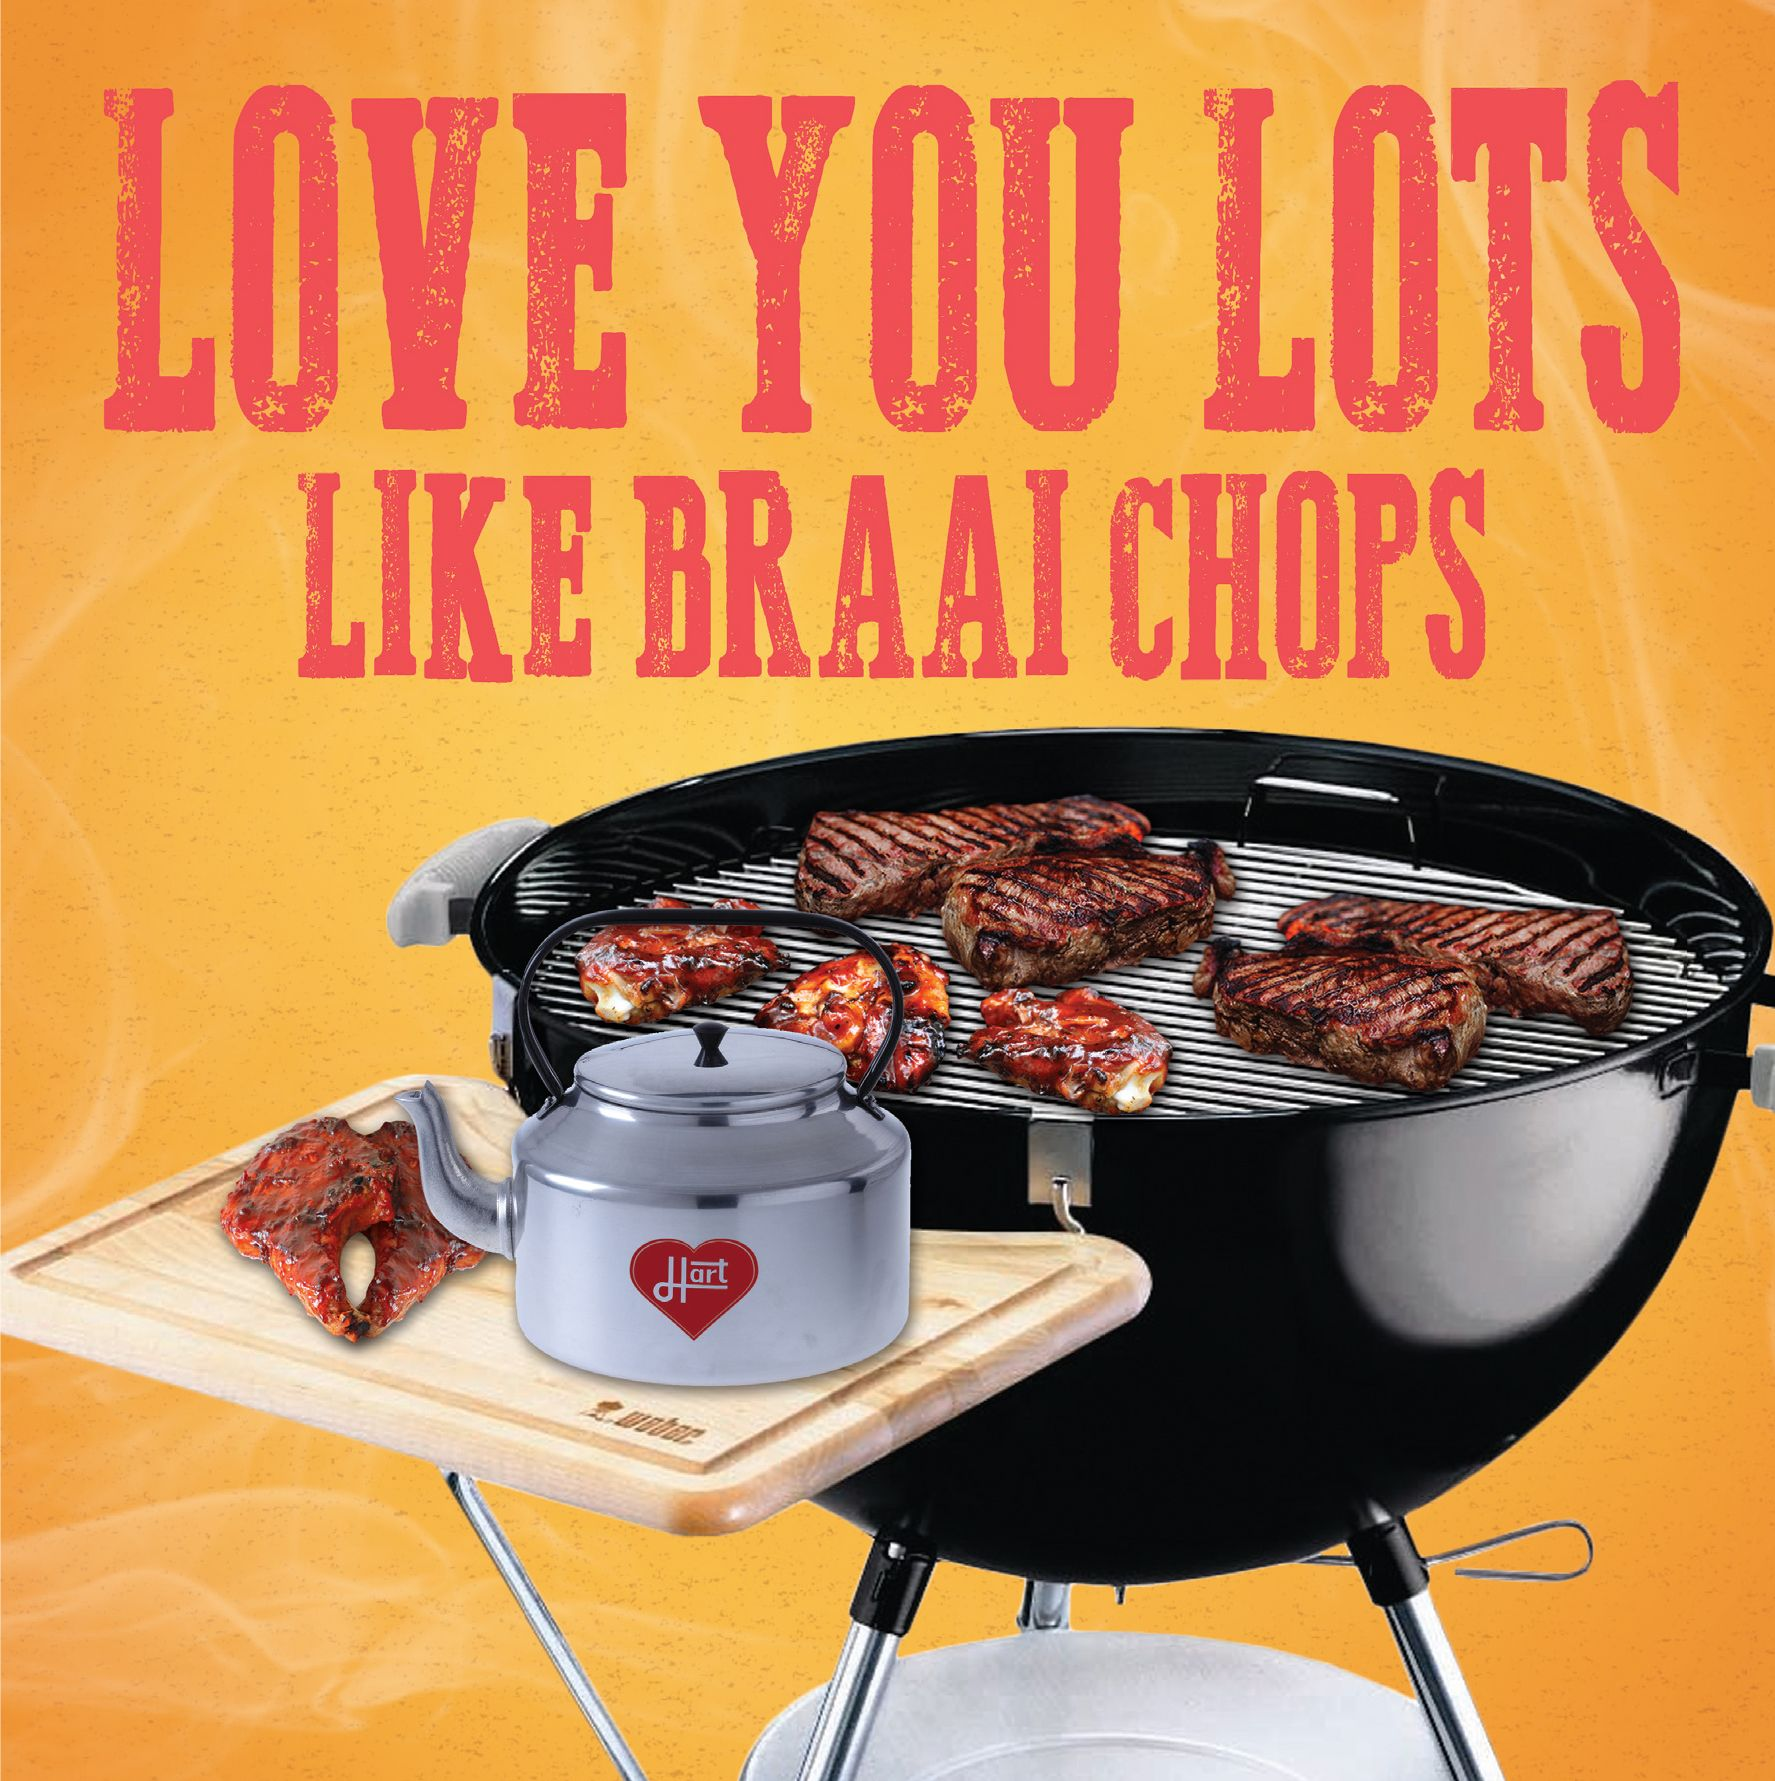 Lots Like Braai Chops